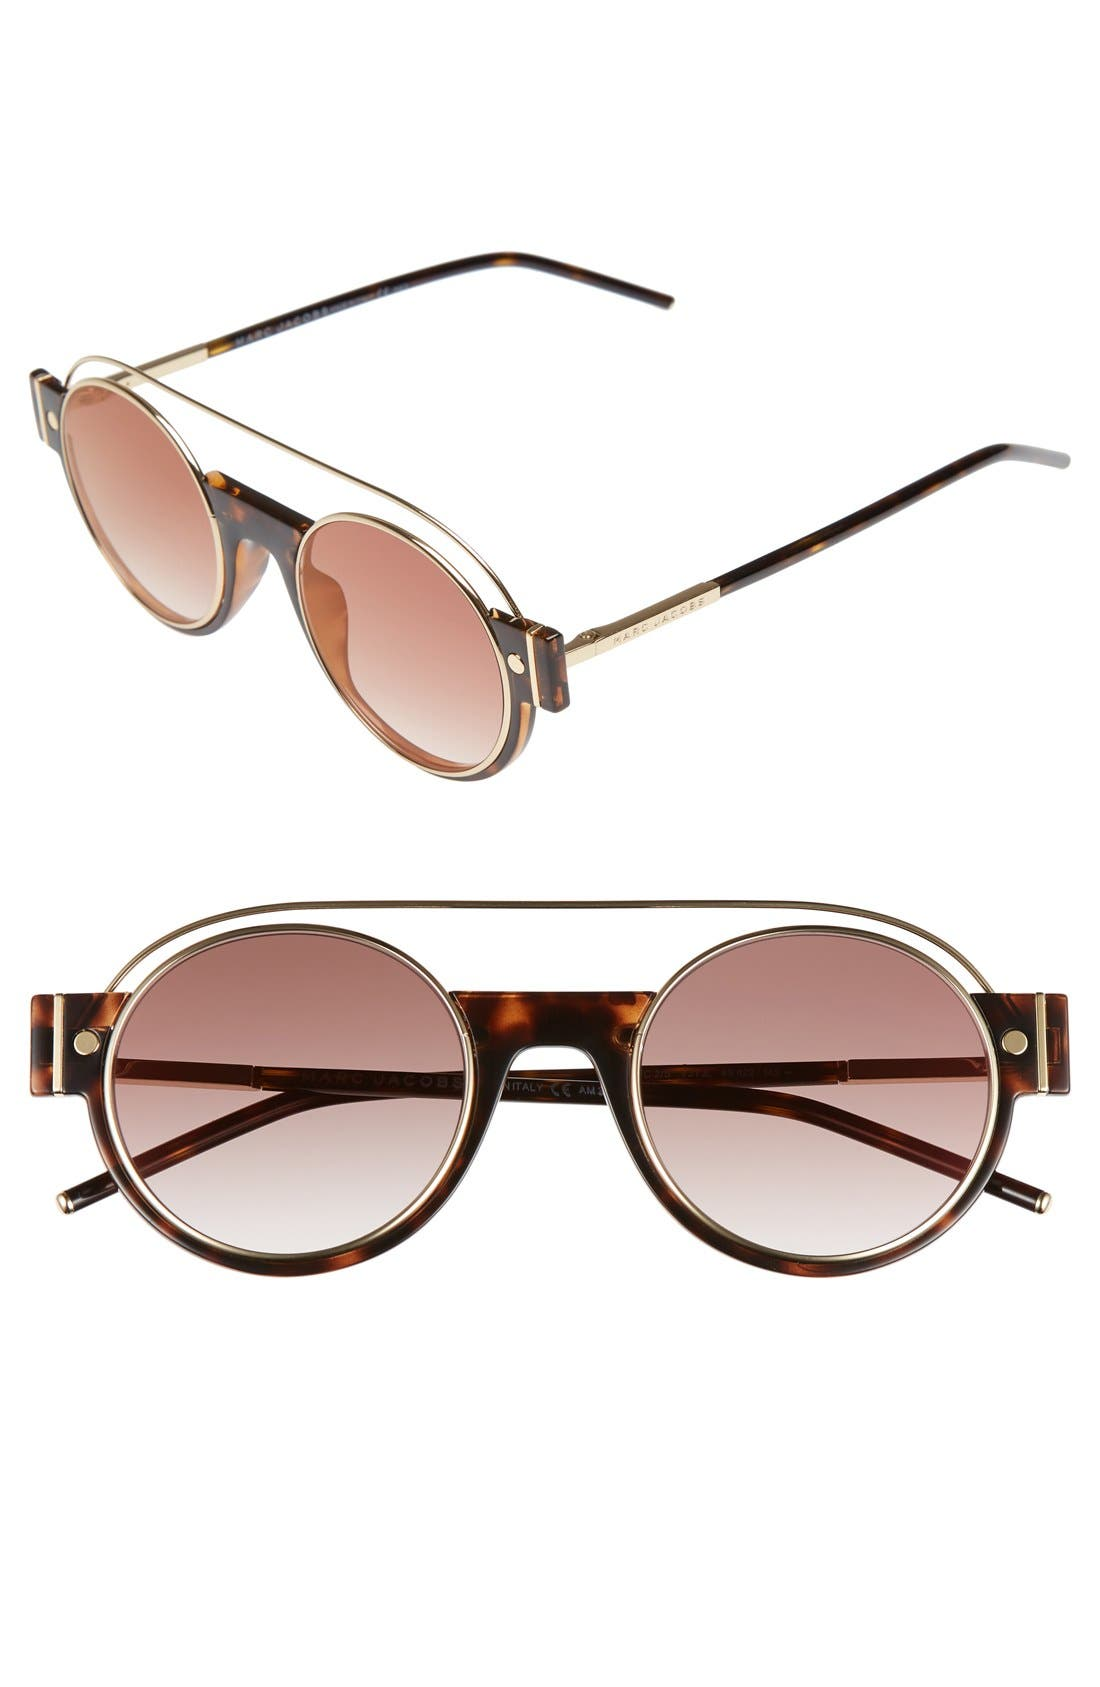 49mm Round Sunglasses,                             Main thumbnail 1, color,                             210